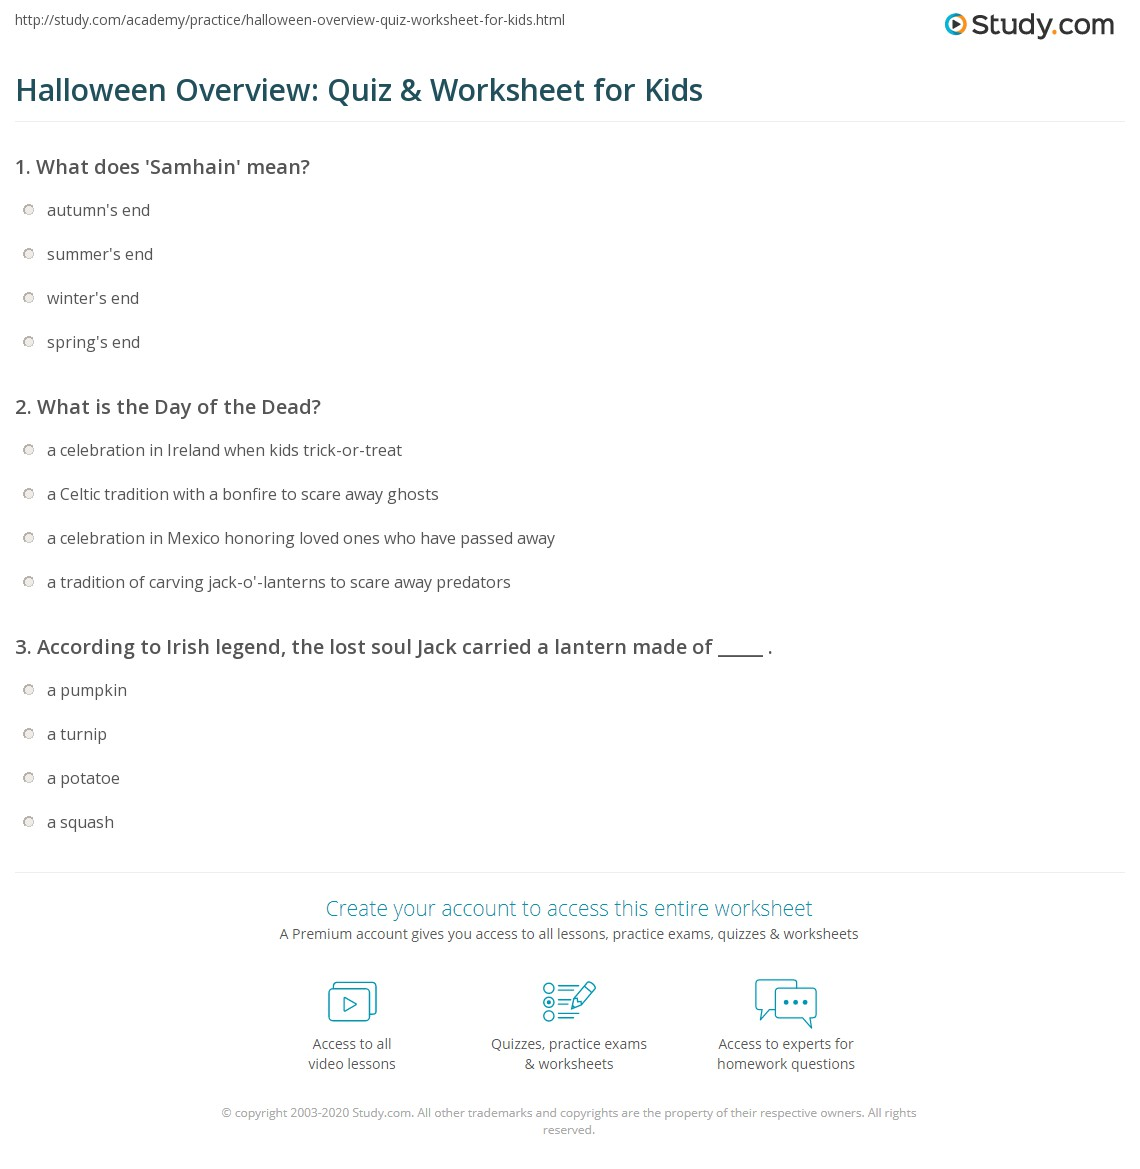 print halloween lesson for kids history facts worksheet - Halloween Quiz For Kids